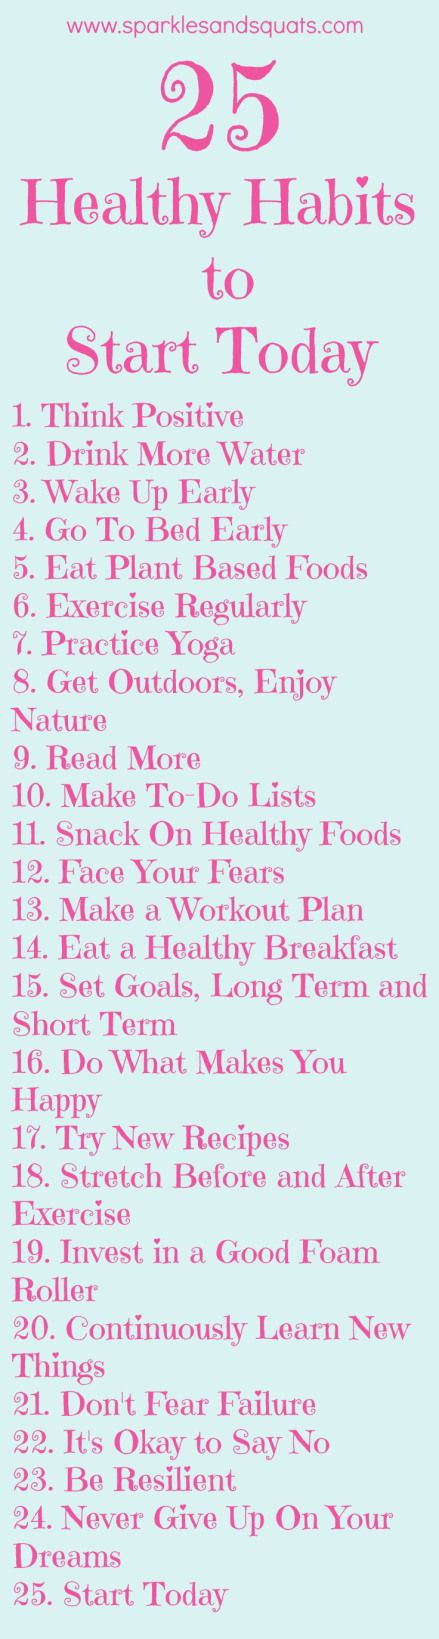 25 Healthy Habits to Start Today!